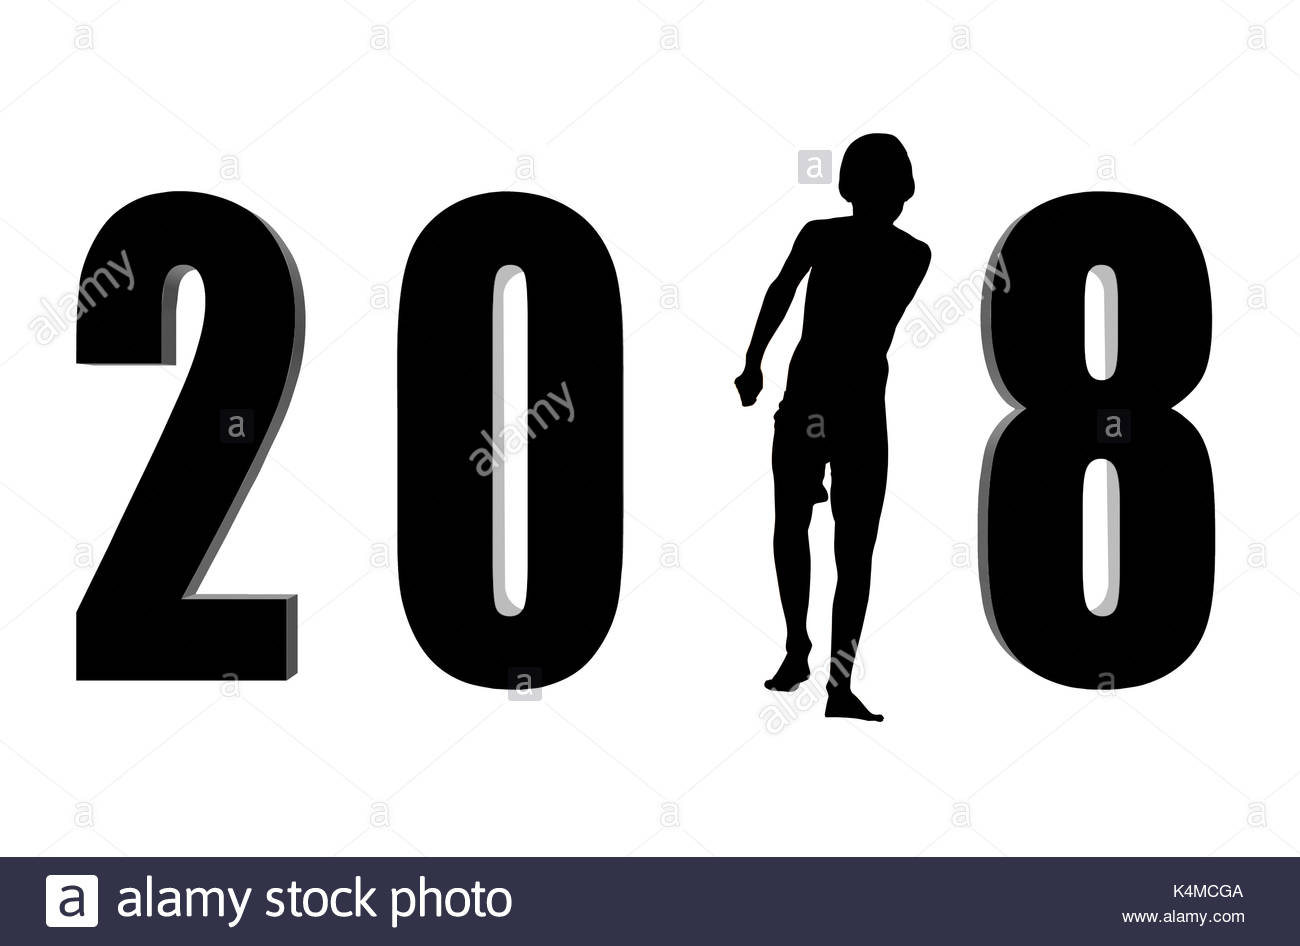 1300x946 Happy New Year 2018 Black And White Stock Photos Amp Images